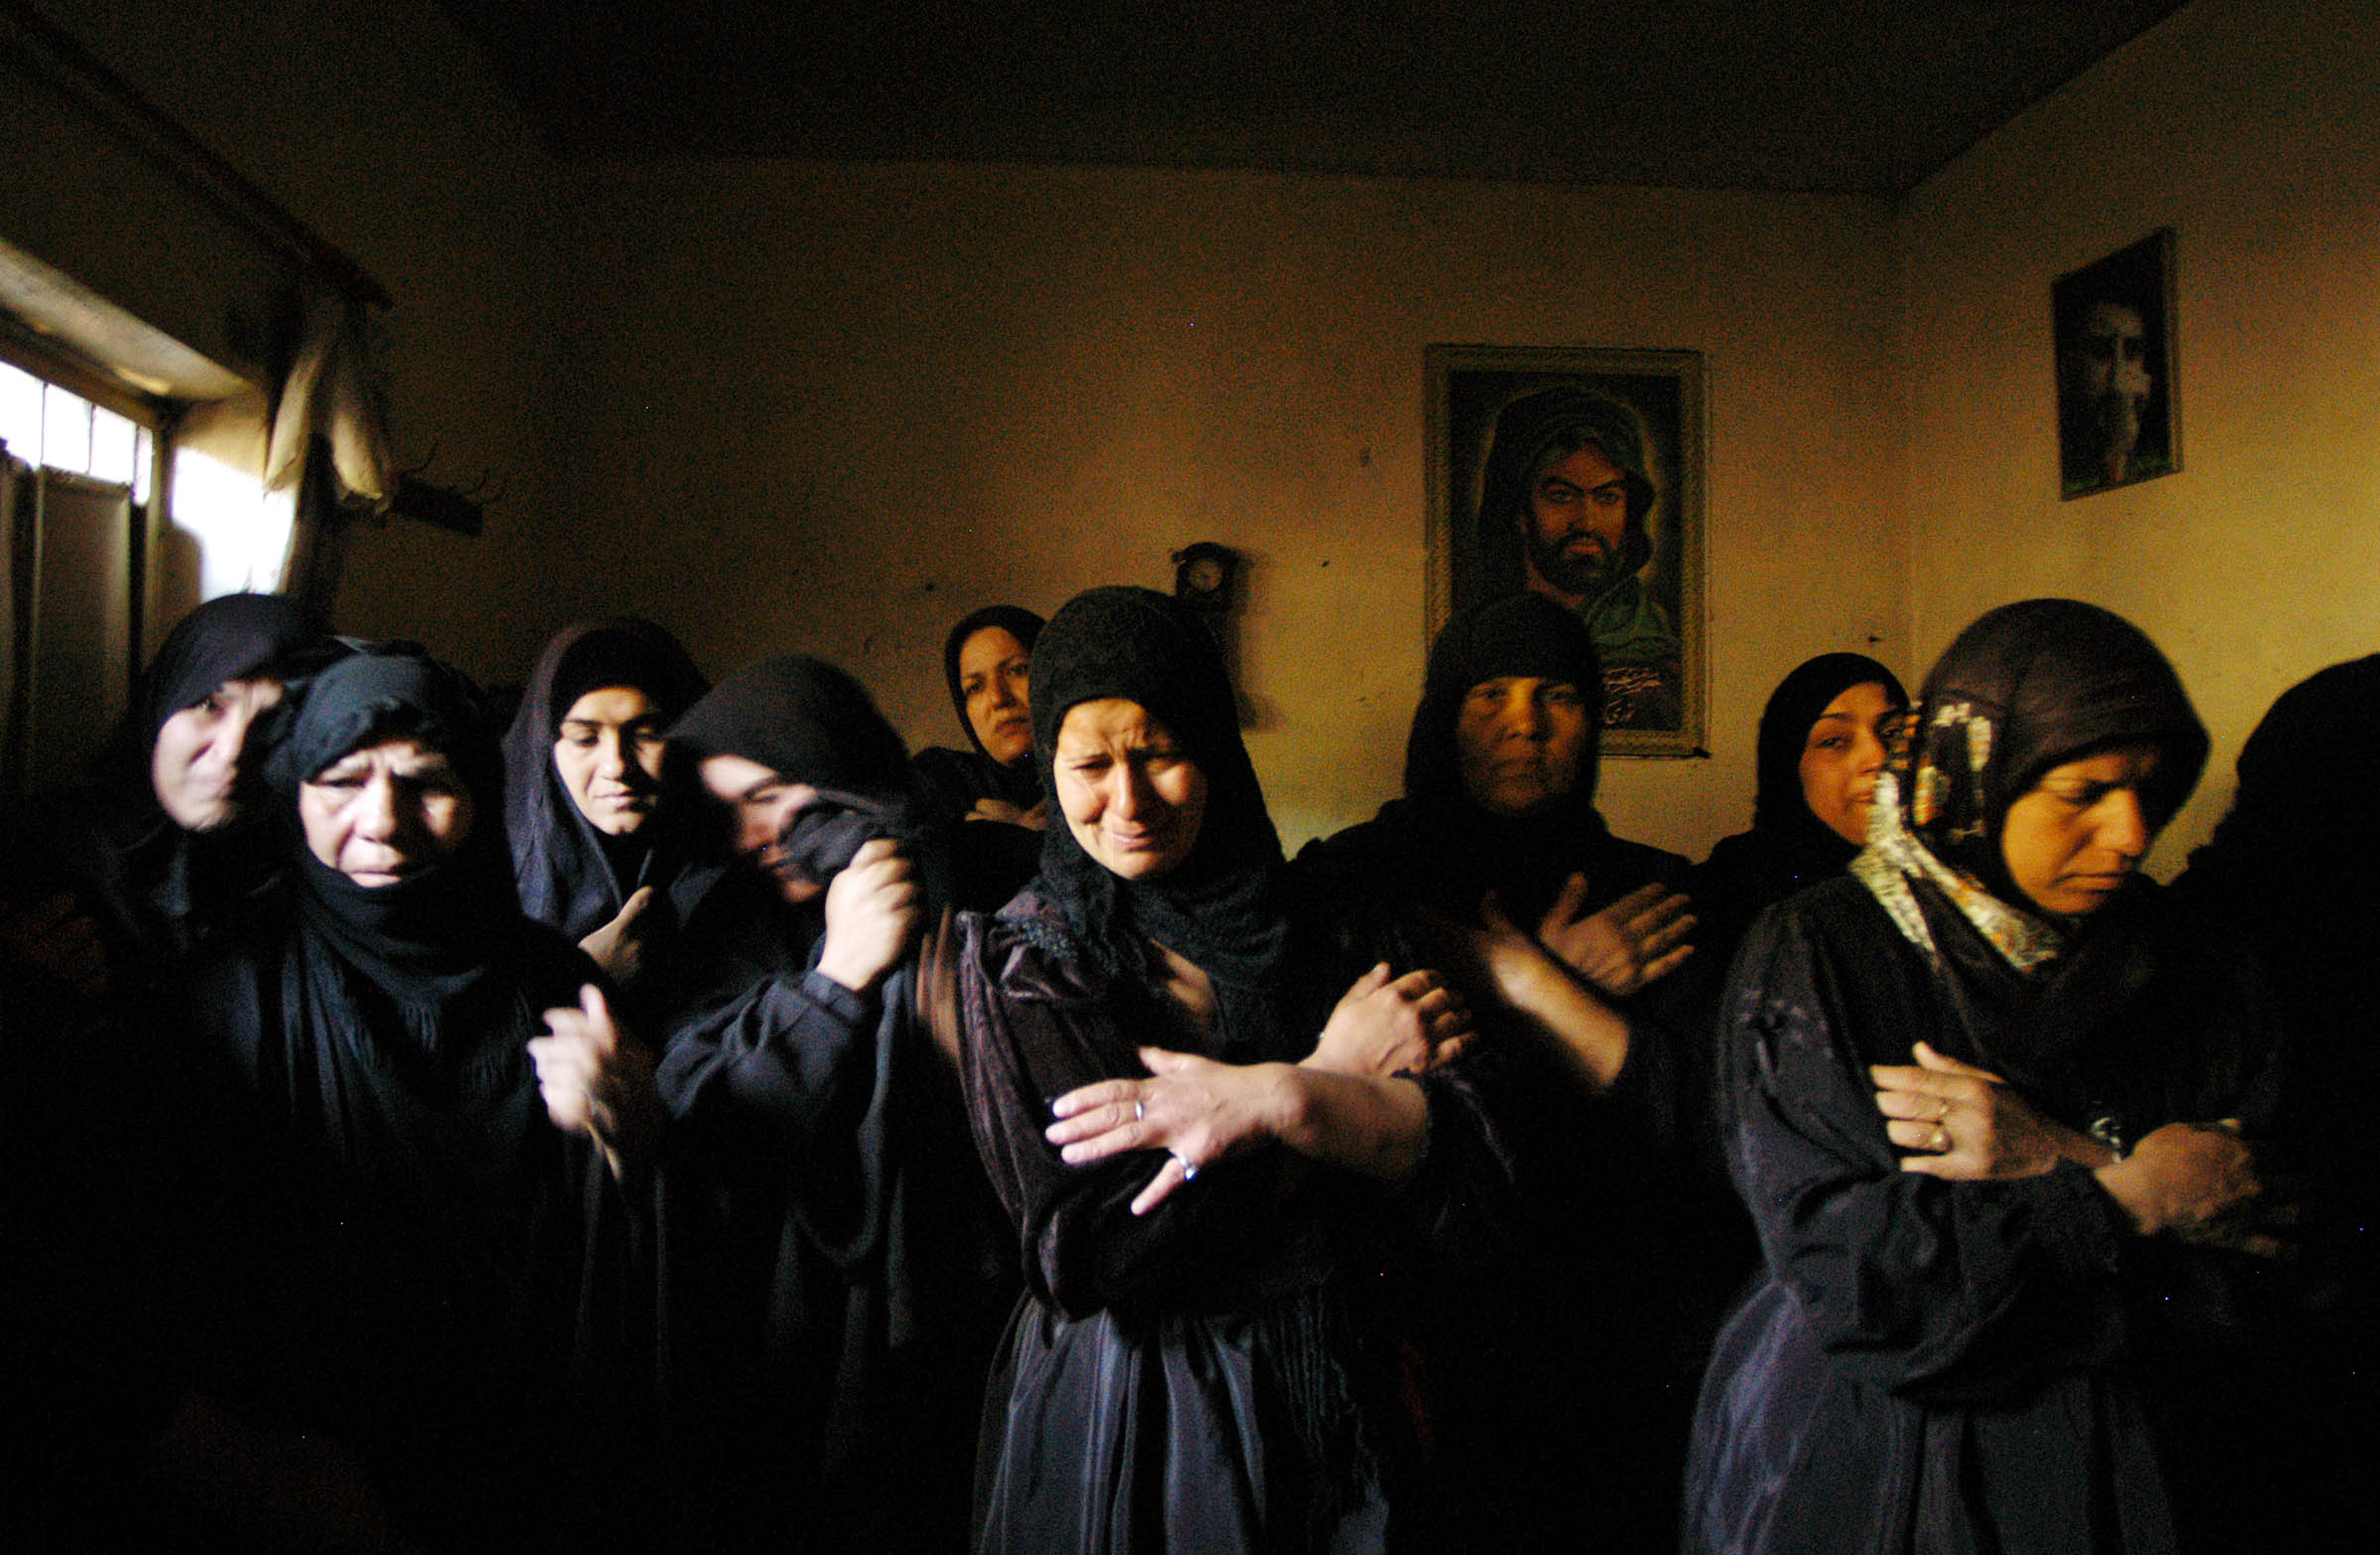 Relatives of Salman Nama Naser, 63, mourn his death at their home in Sadr City, following a day of battle between followers of Iraqi Shiite followers of Muqtada Al Sadr and coalition forces, April 5, 2004.  Dozens of Iraqis have died, as well as at least 9 coalition troops in nationwide fighting across Iraq.